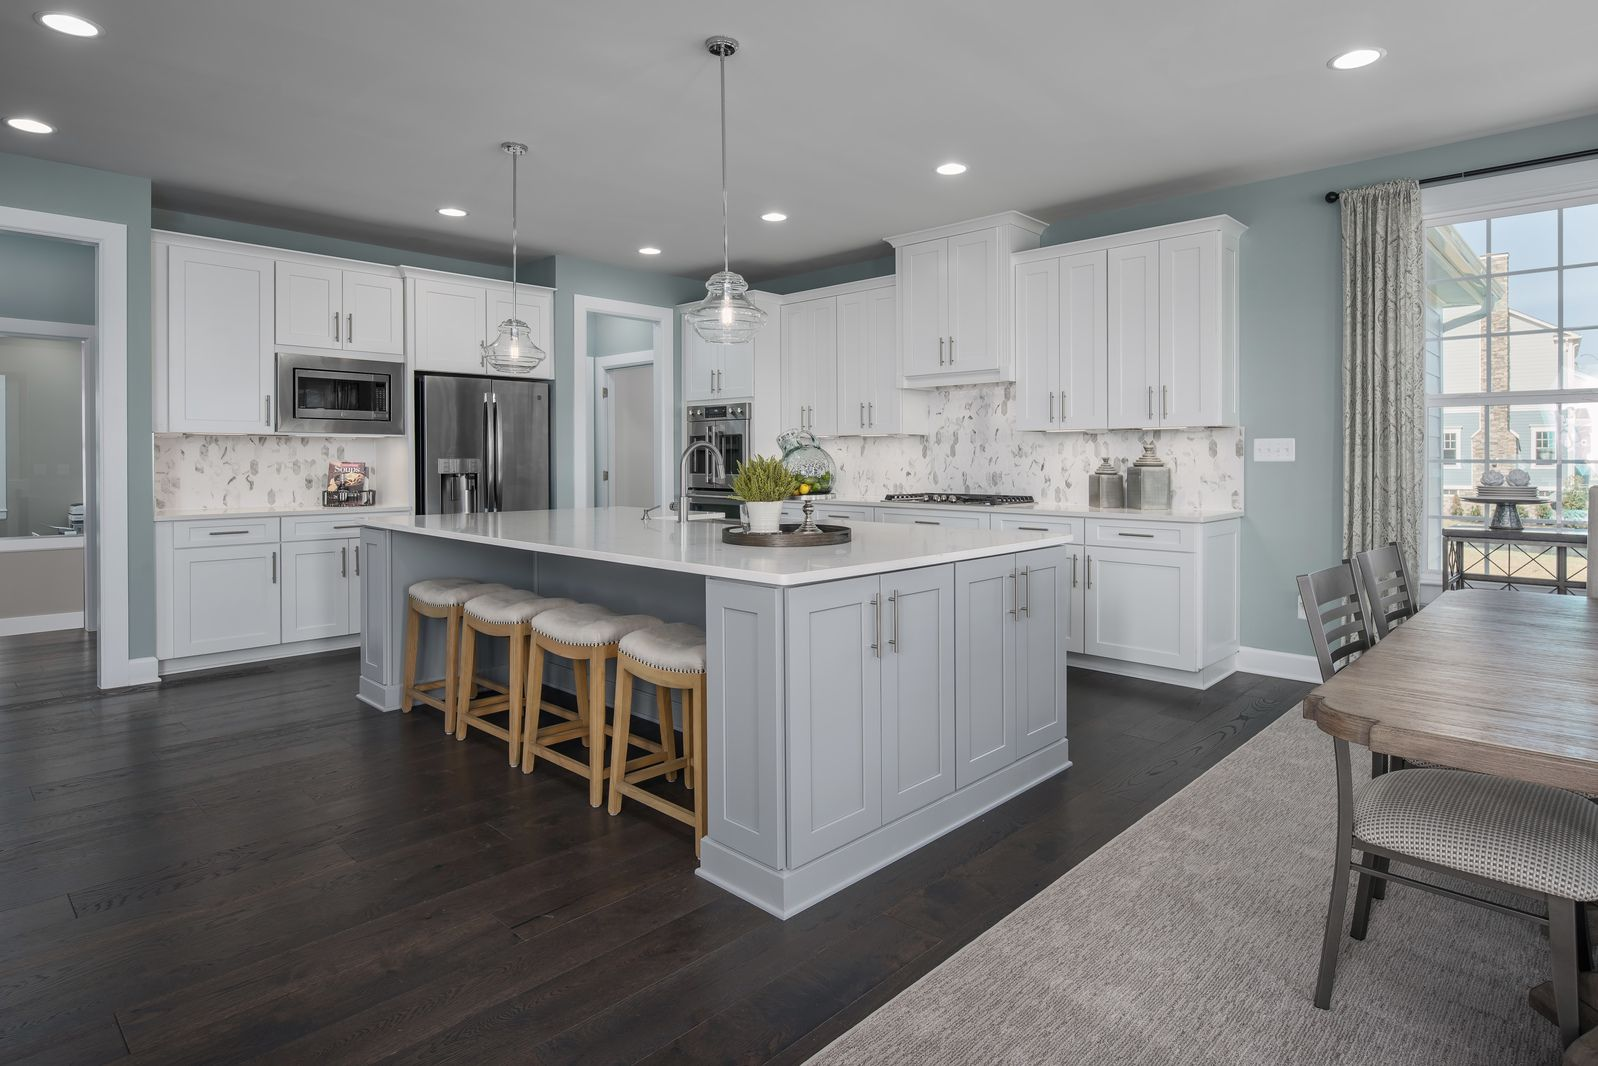 Kitchen featured in the Radford By NVHomes in Washington, MD